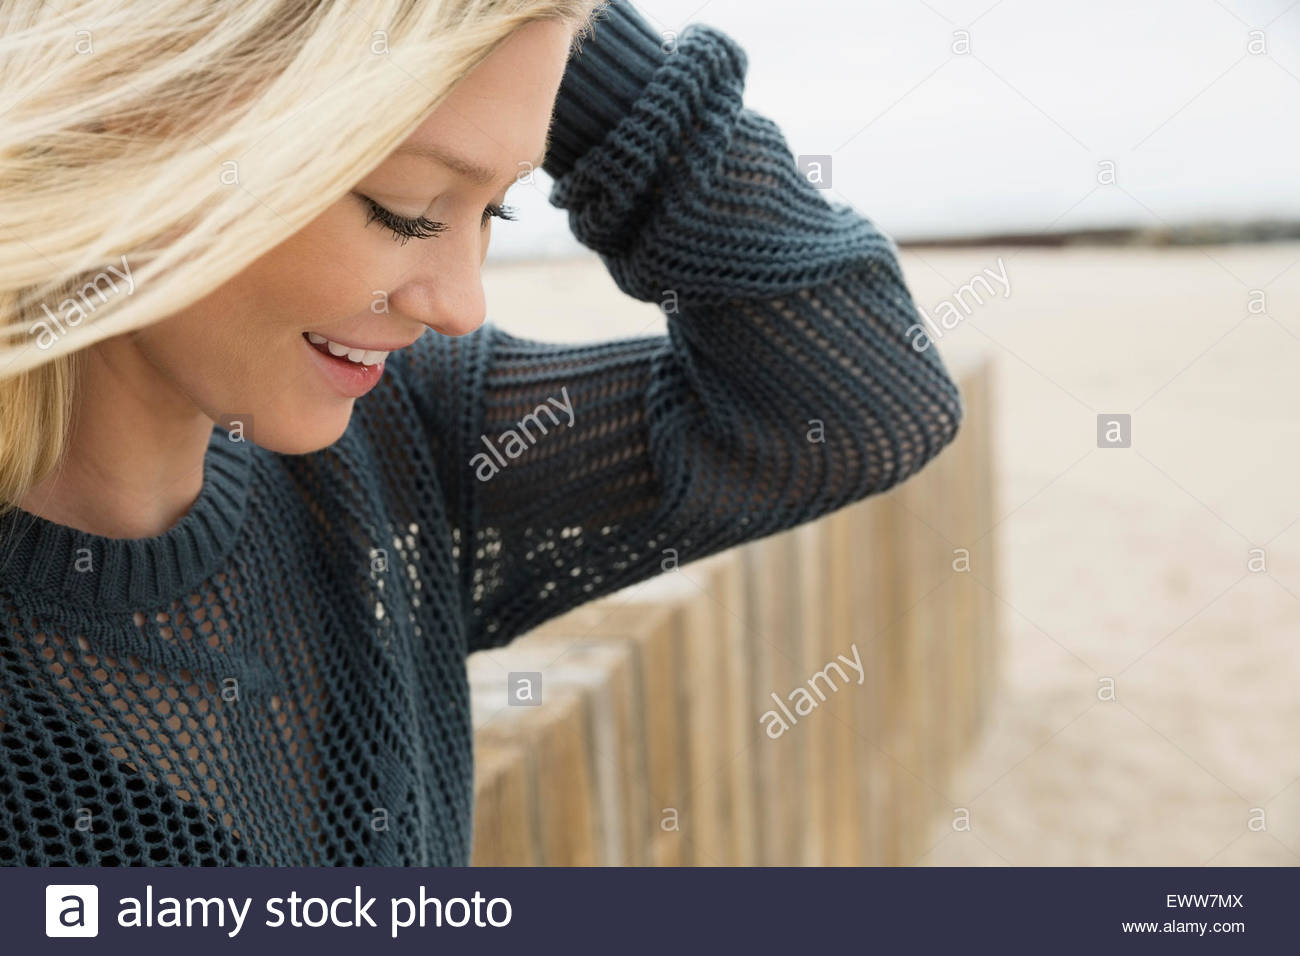 Blonde woman at beach Photo Stock